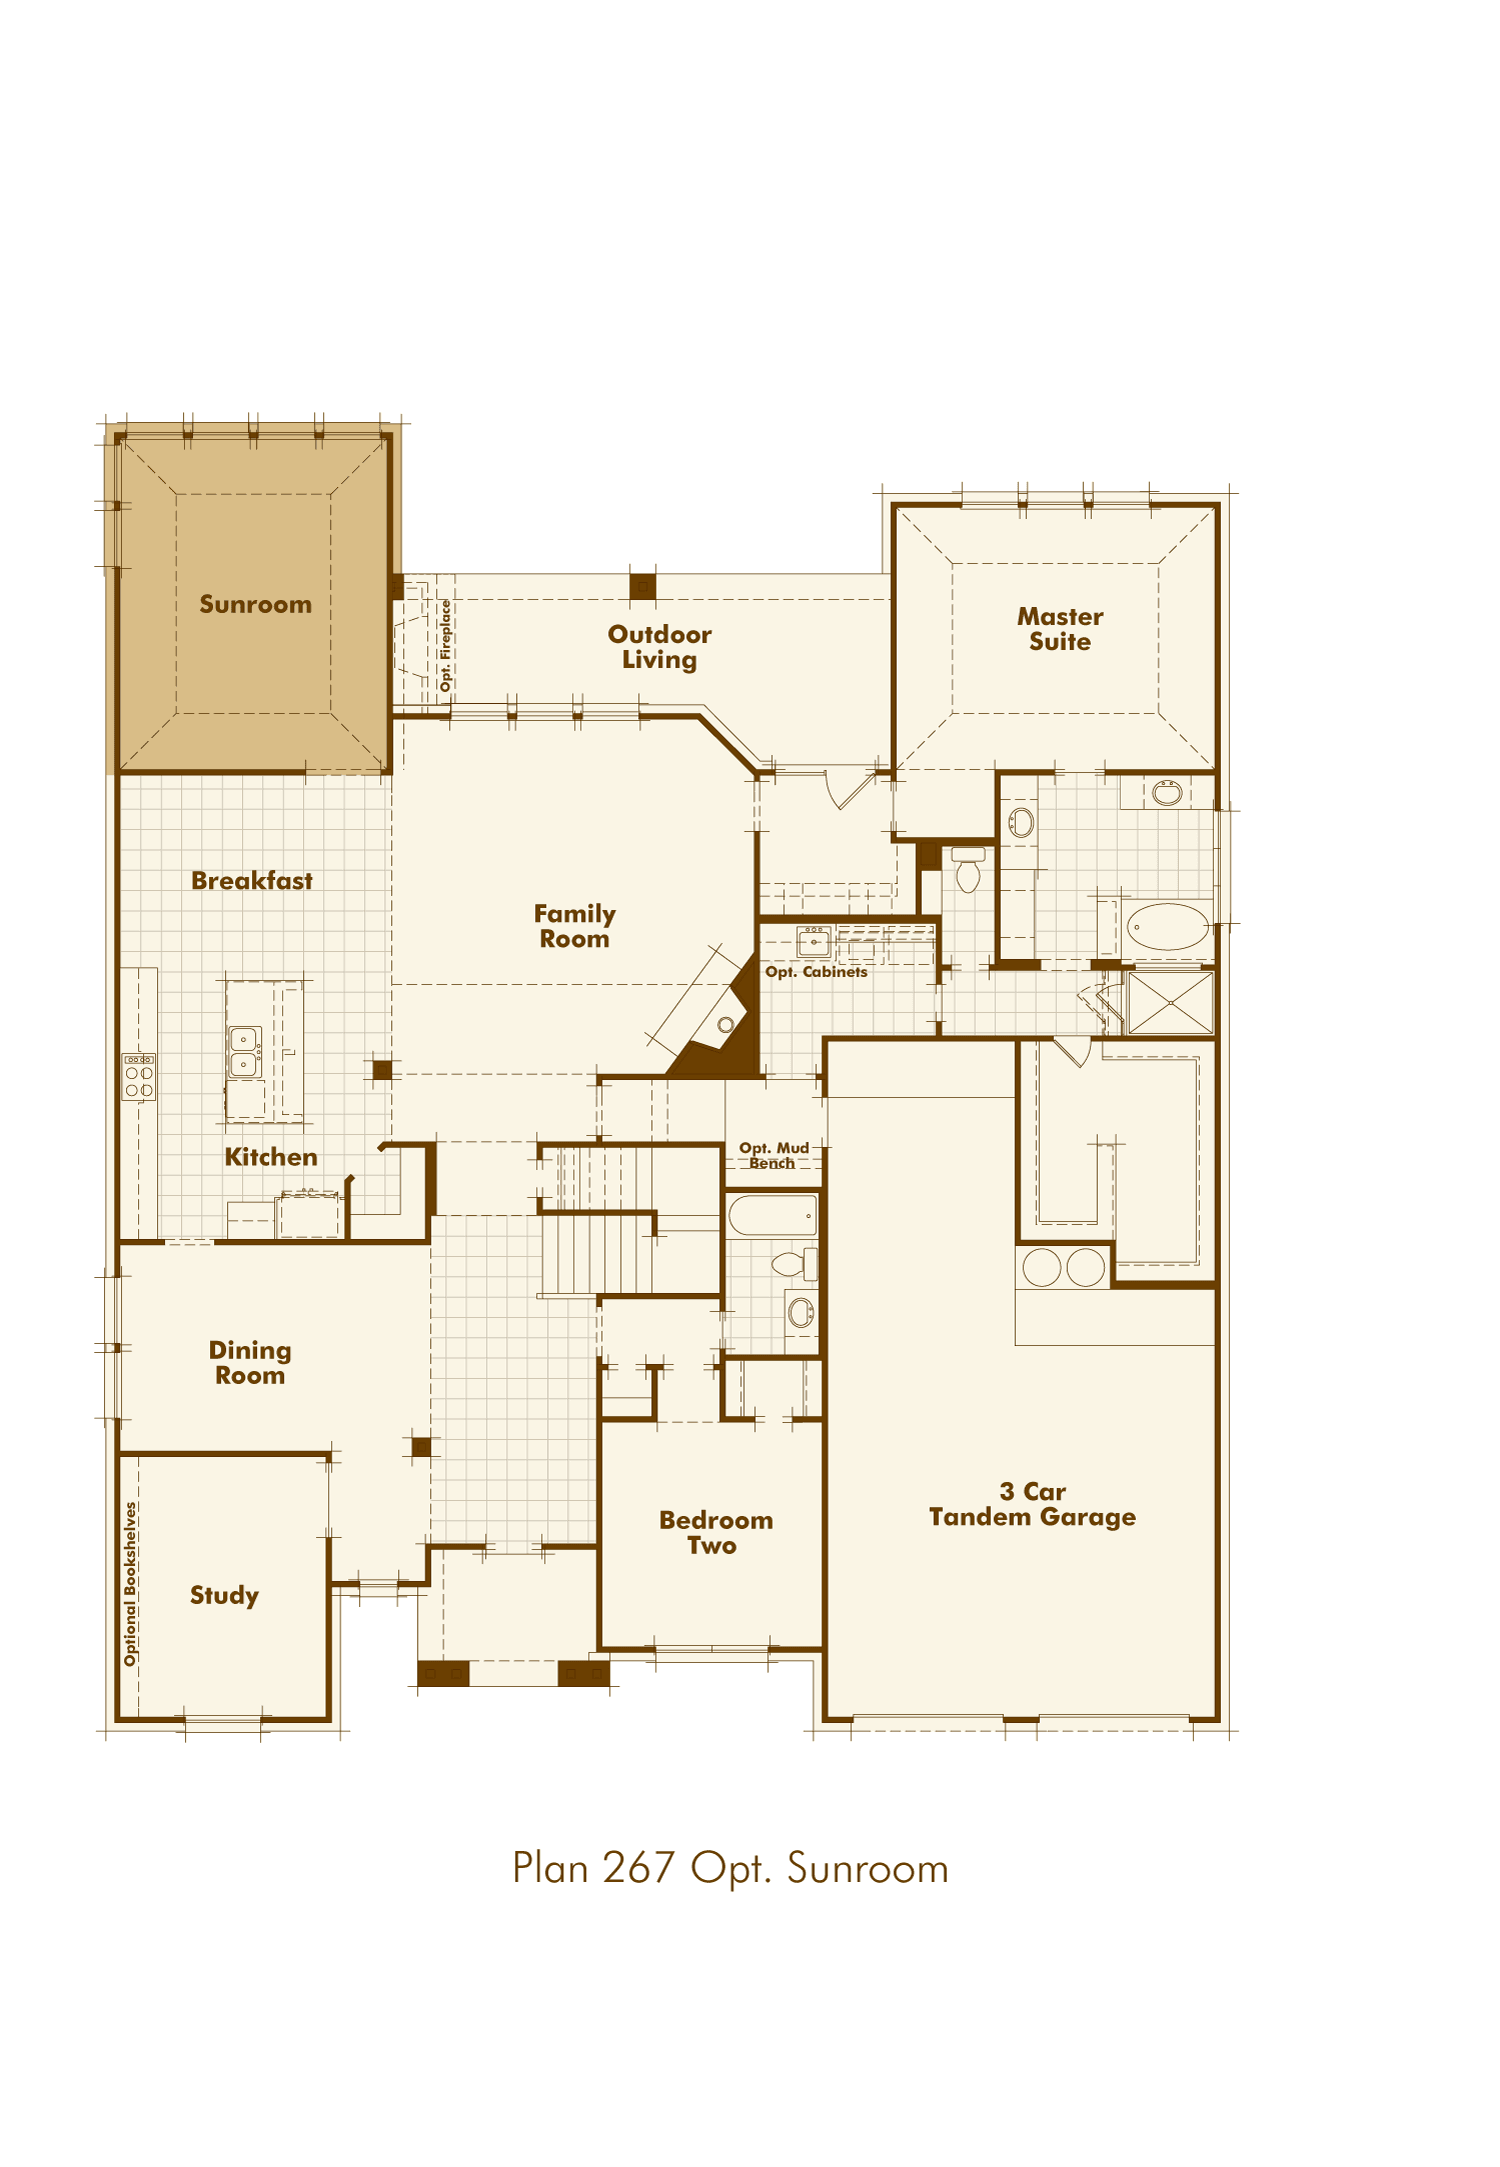 Highland Homes Hollyhock Plan 267 1329416 Frisco Tx New Home For Sale Homegain